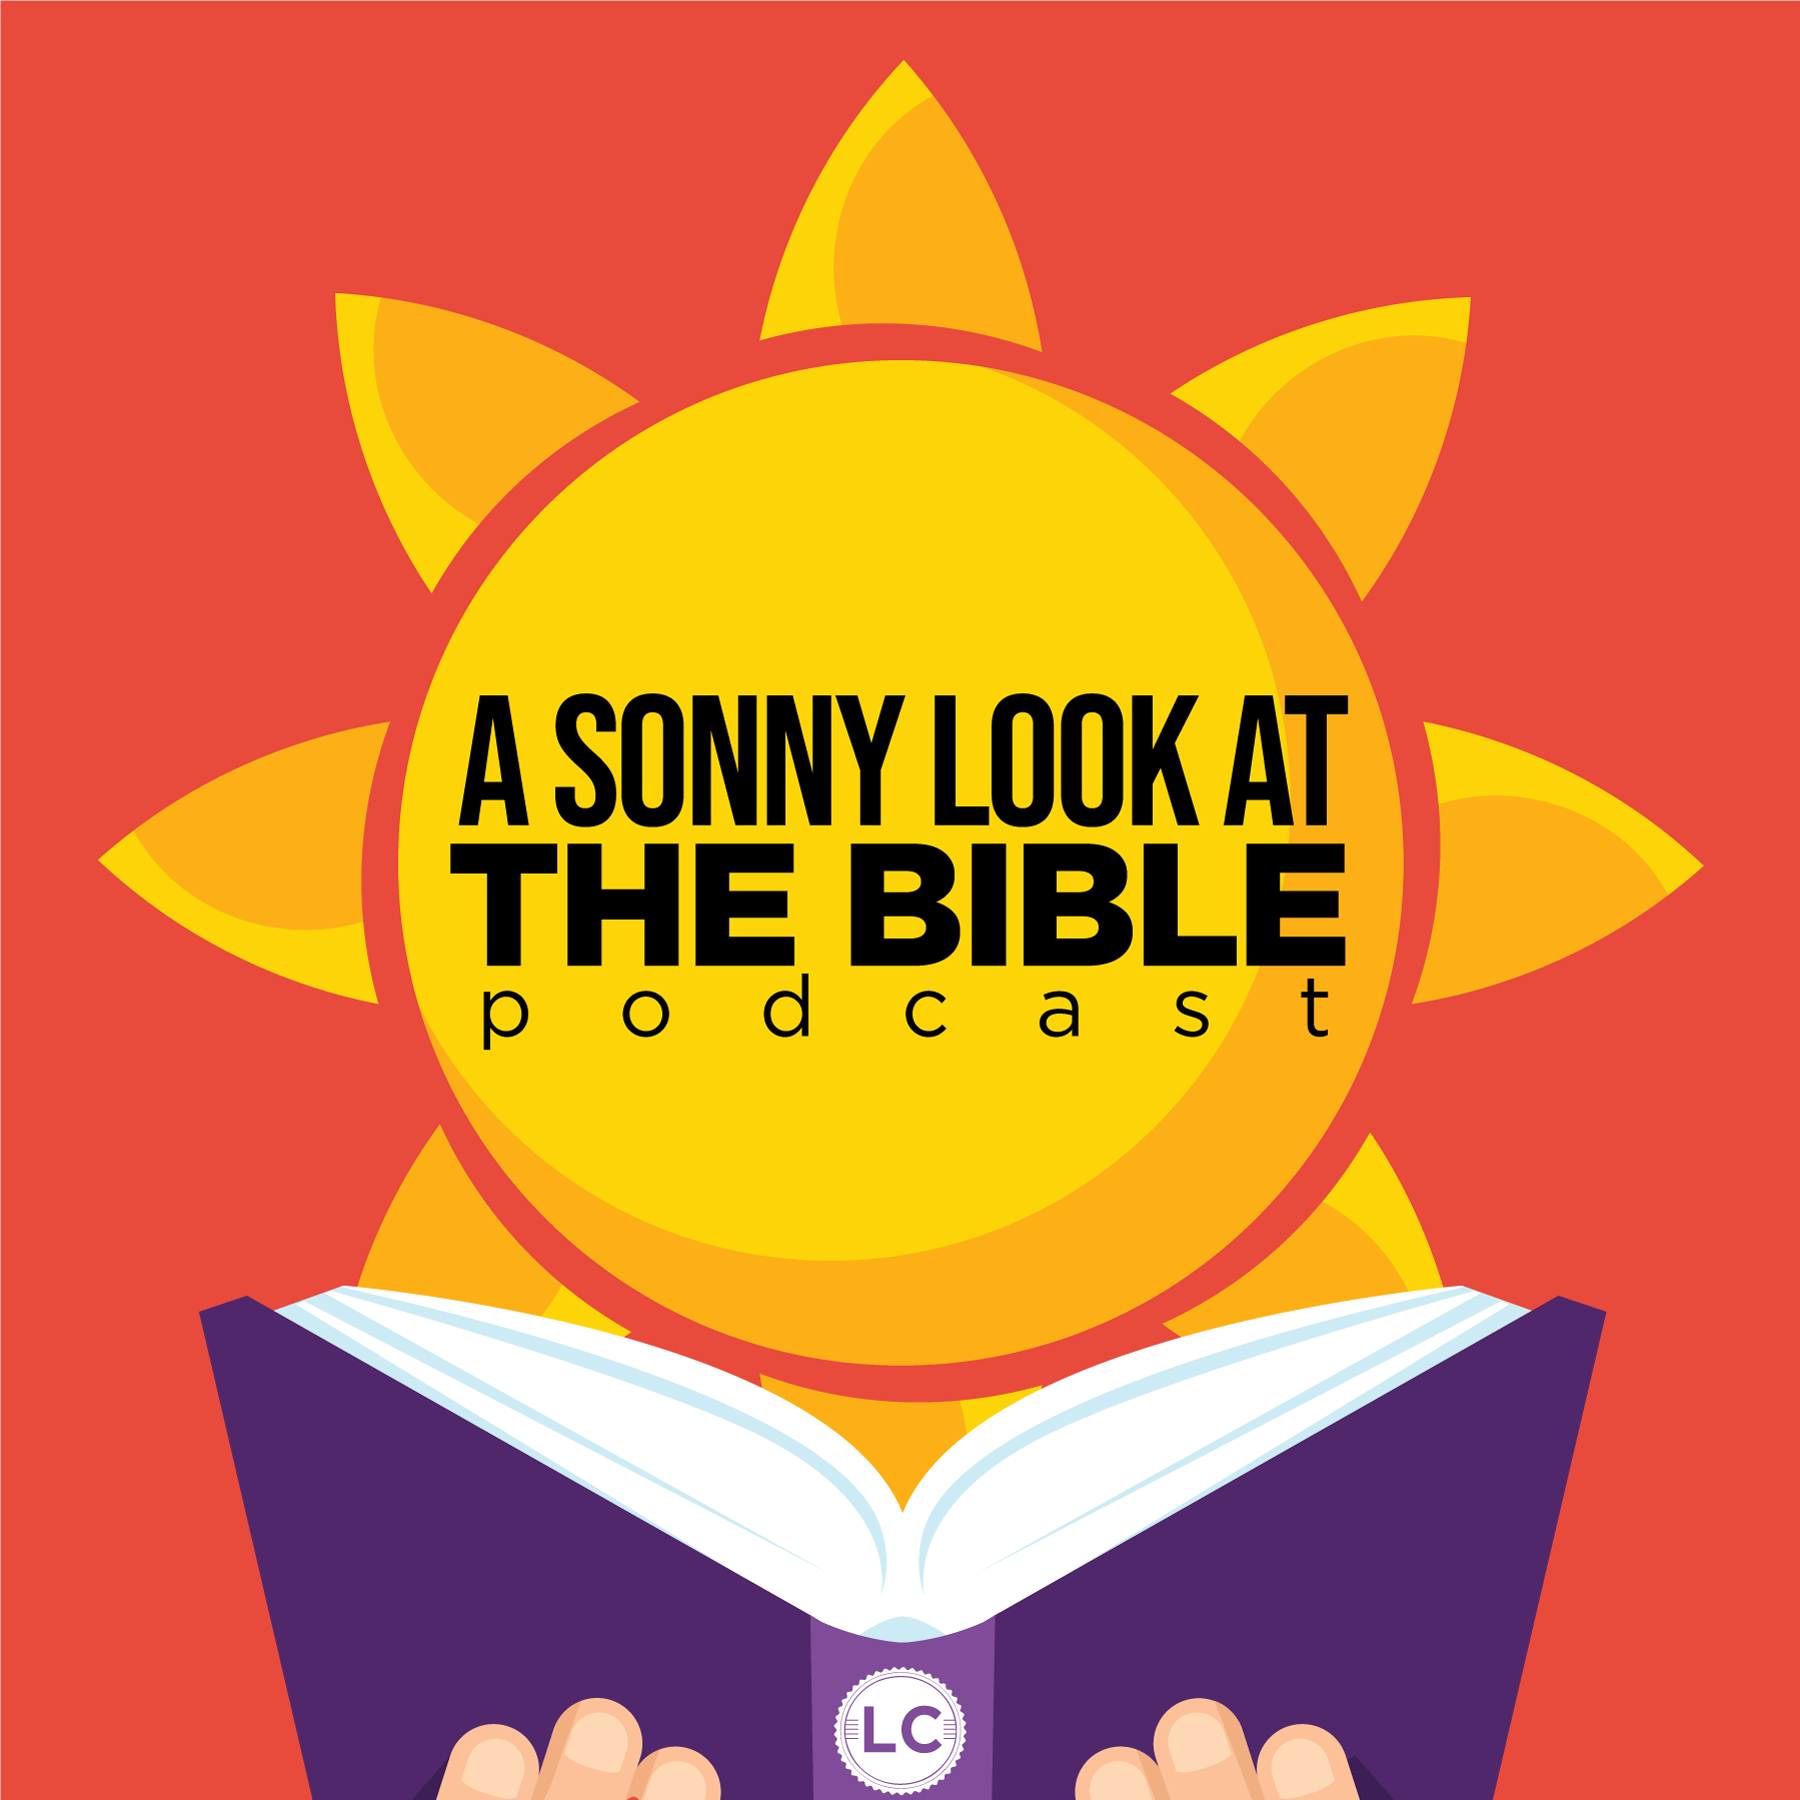 Artwork for podcast A Sonny Look at the Bible